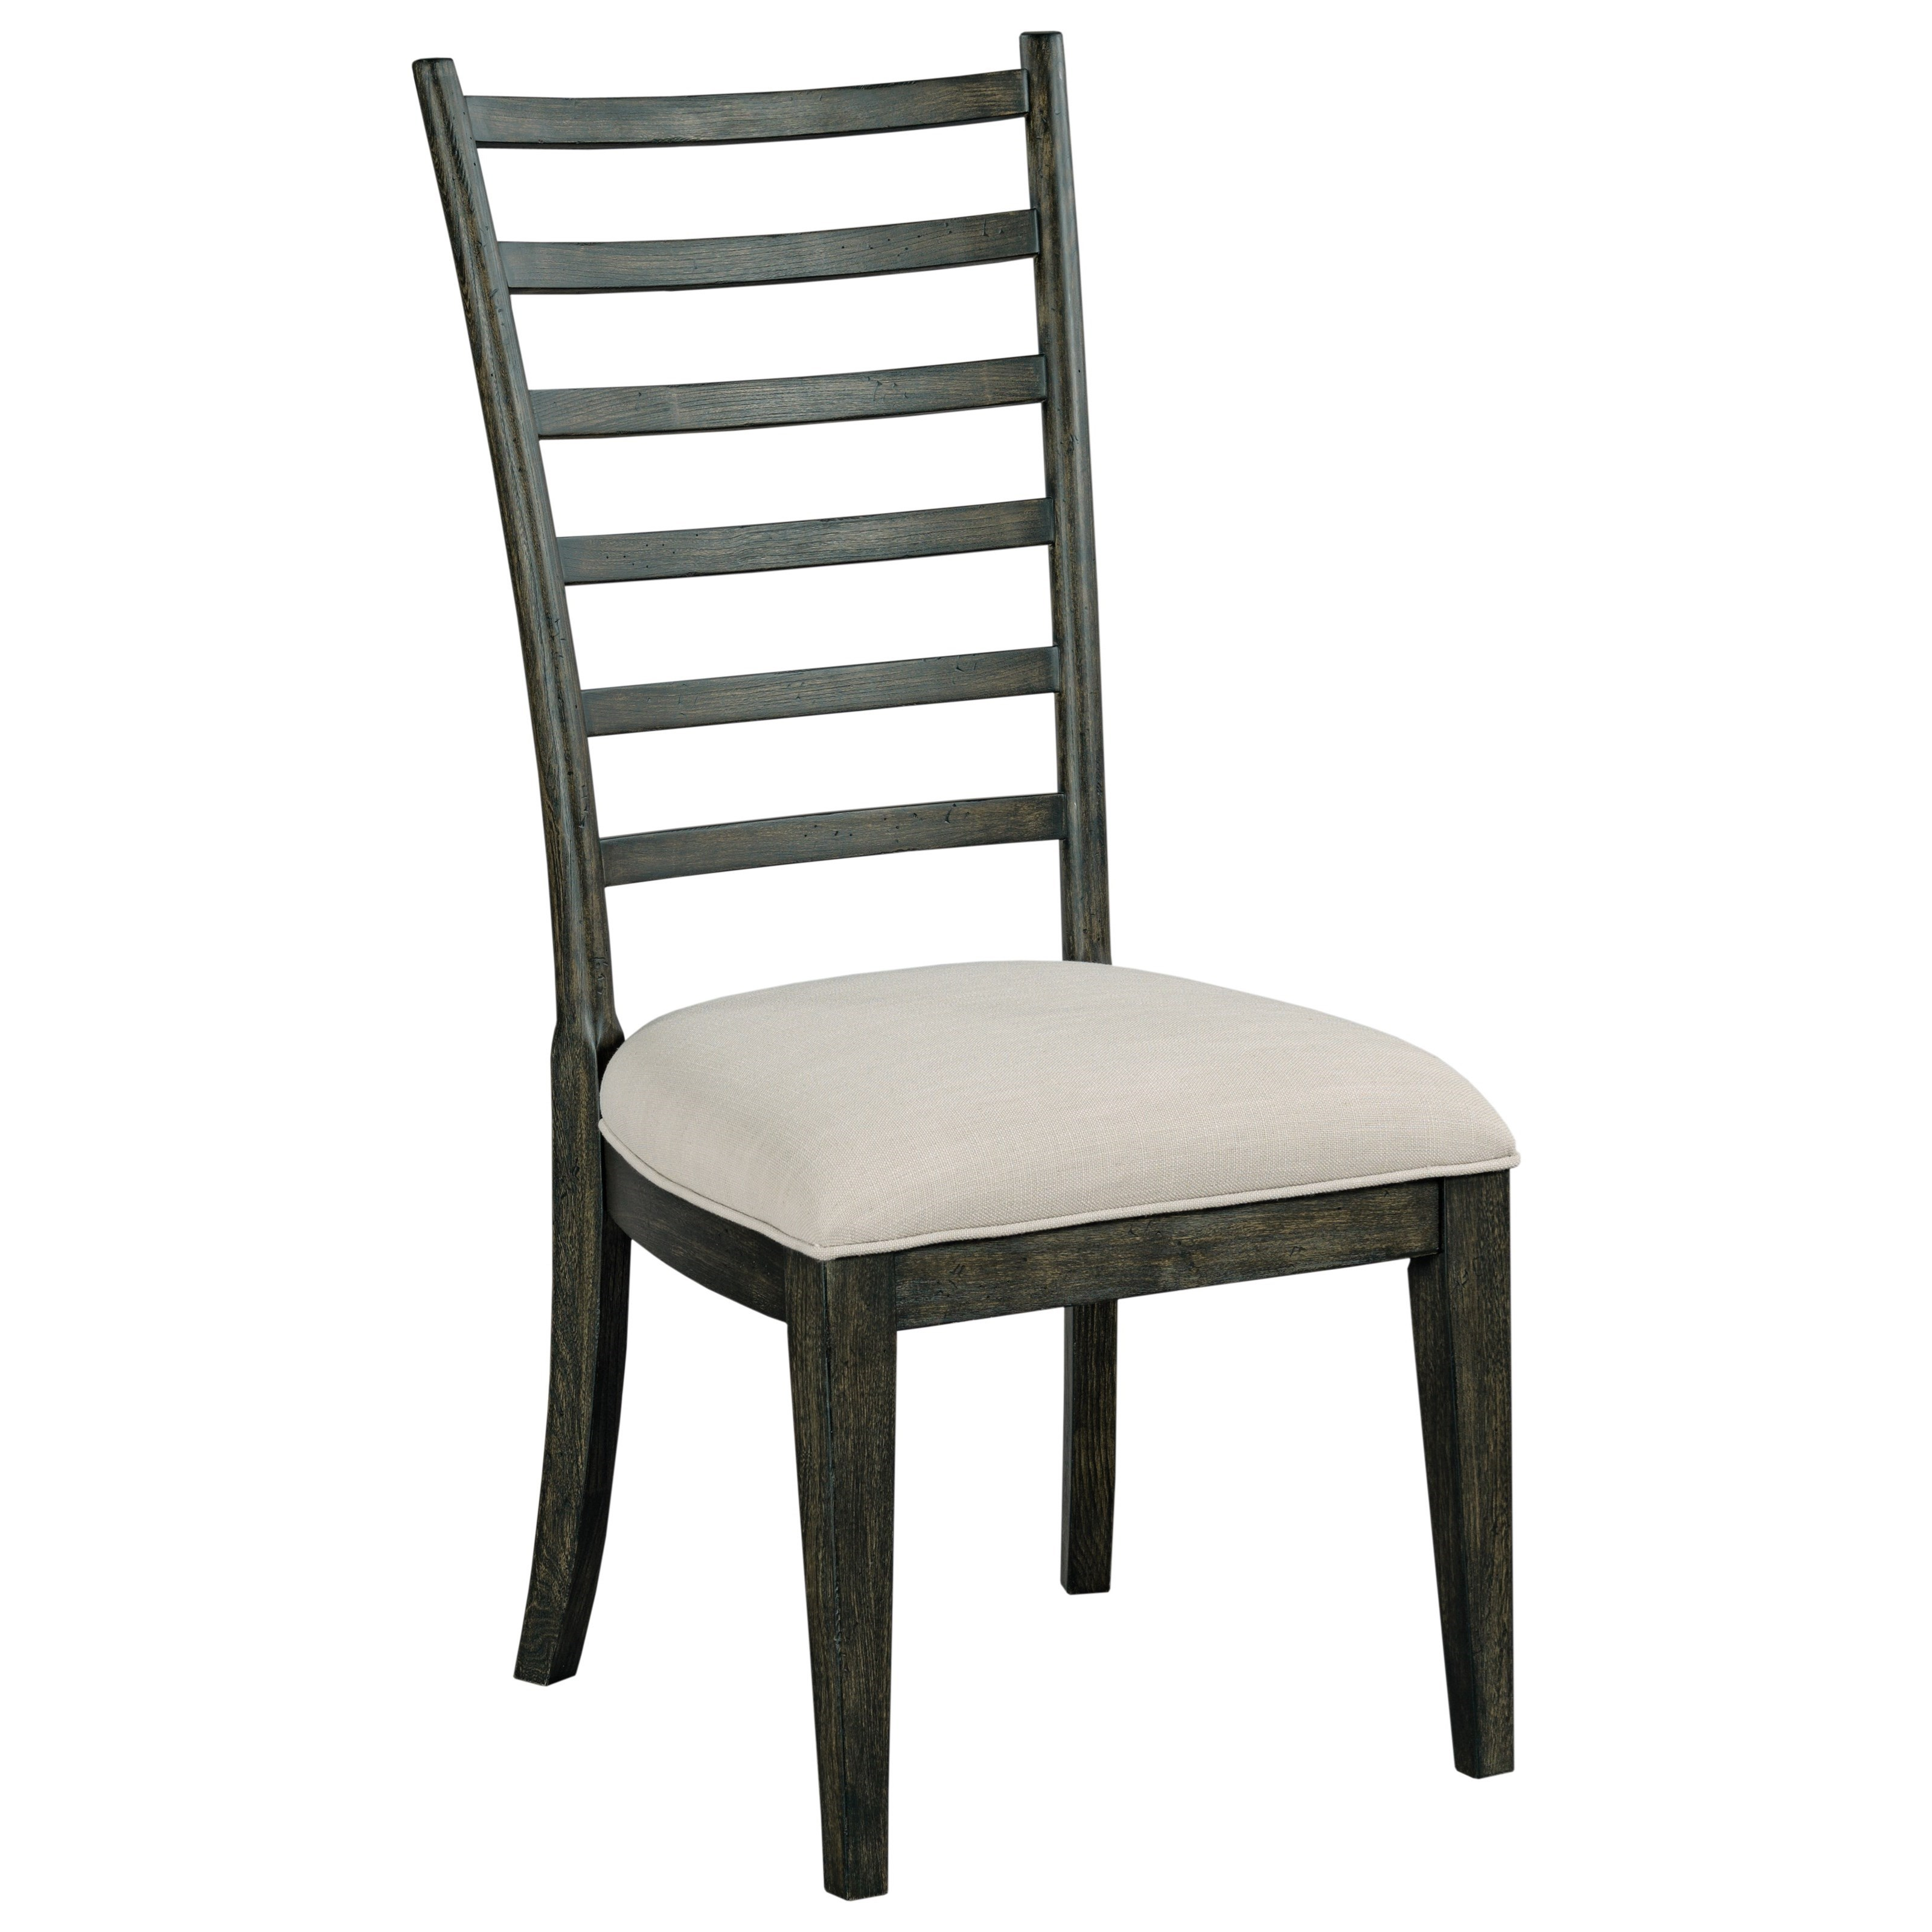 Plank Road Oakley Side Chair                            at Stoney Creek Furniture